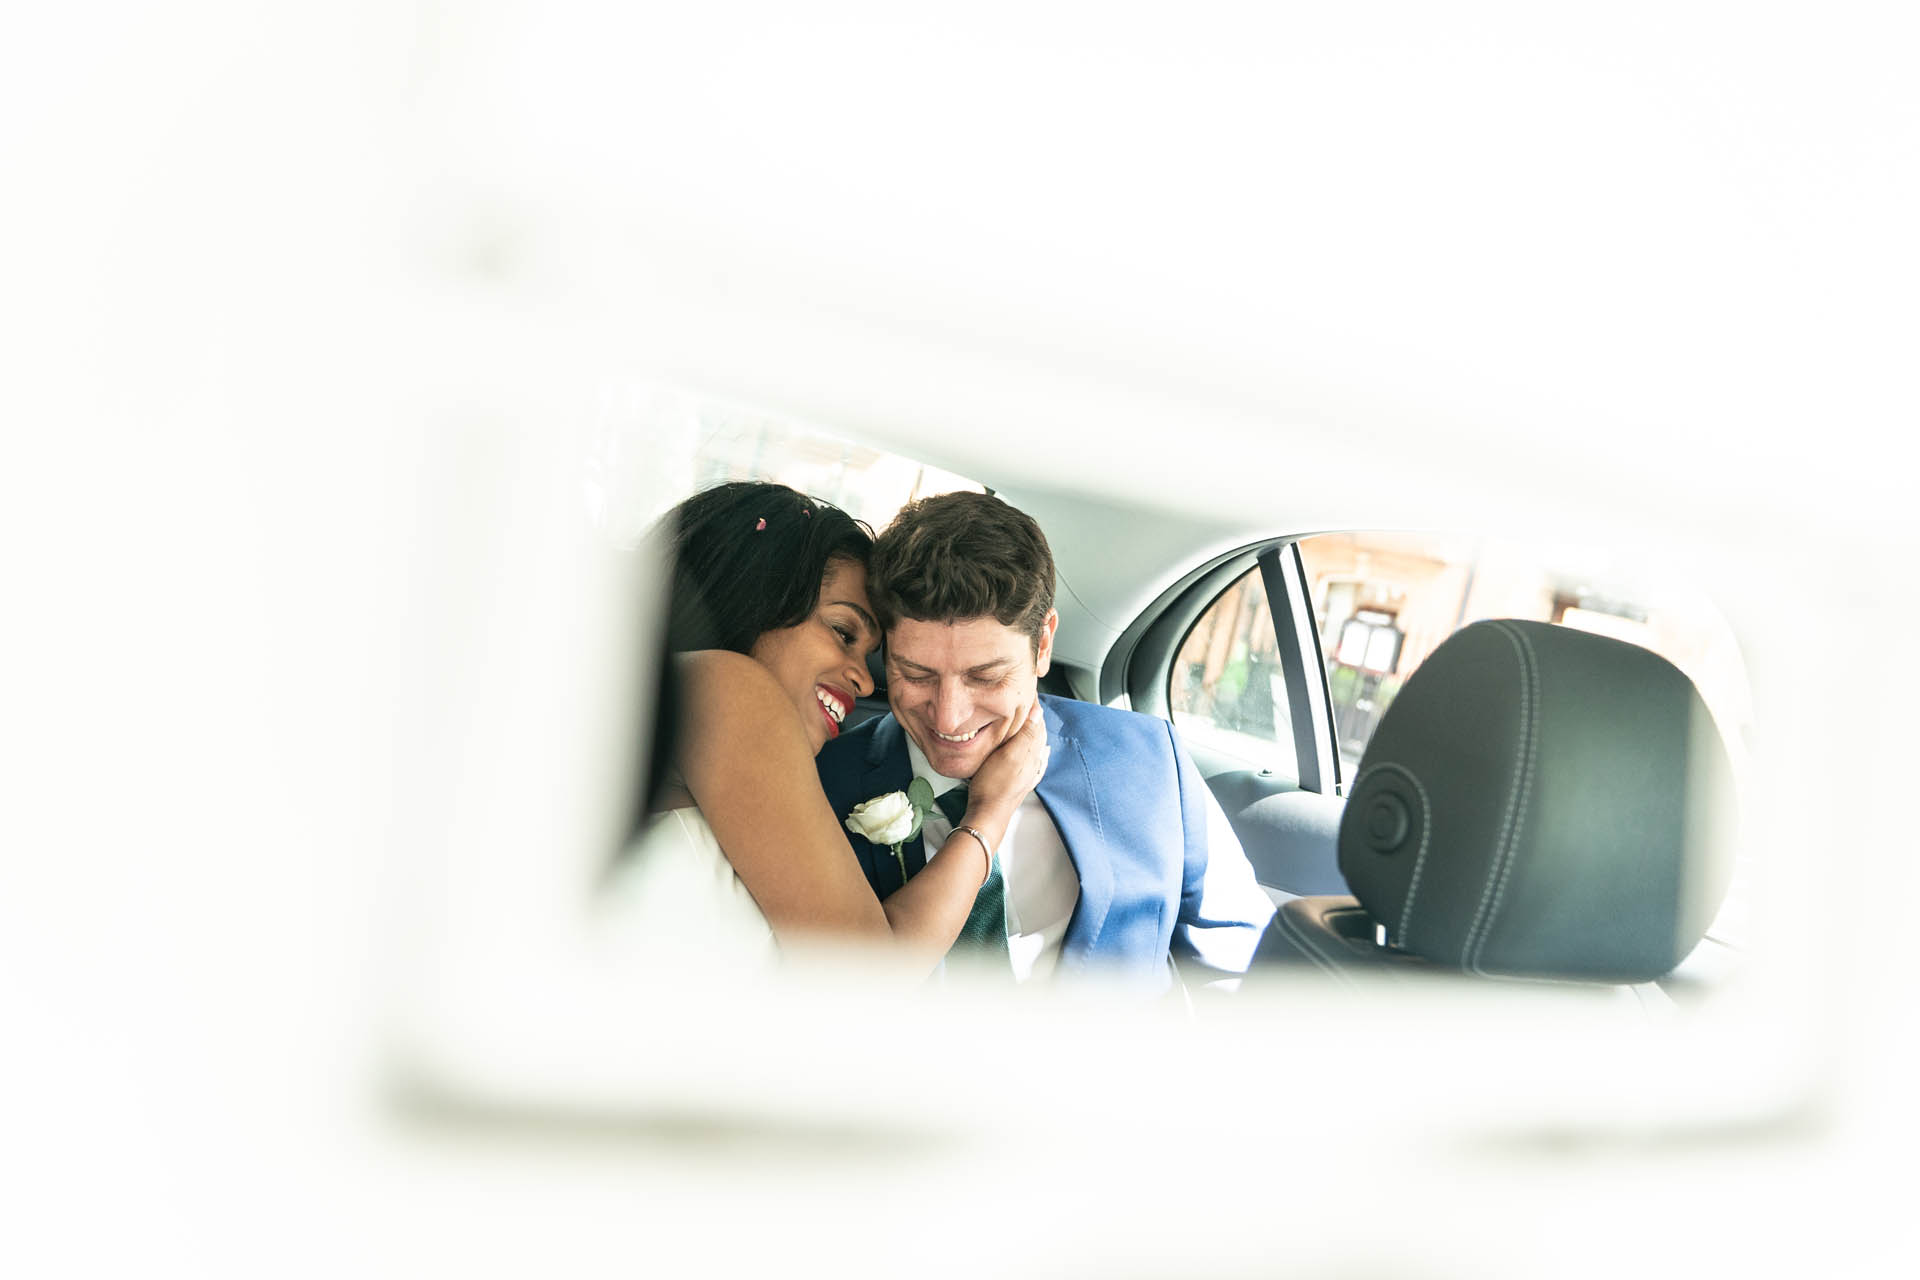 London Elopement Couple Photo | The bride and groom share a beautiful minute together in the cab